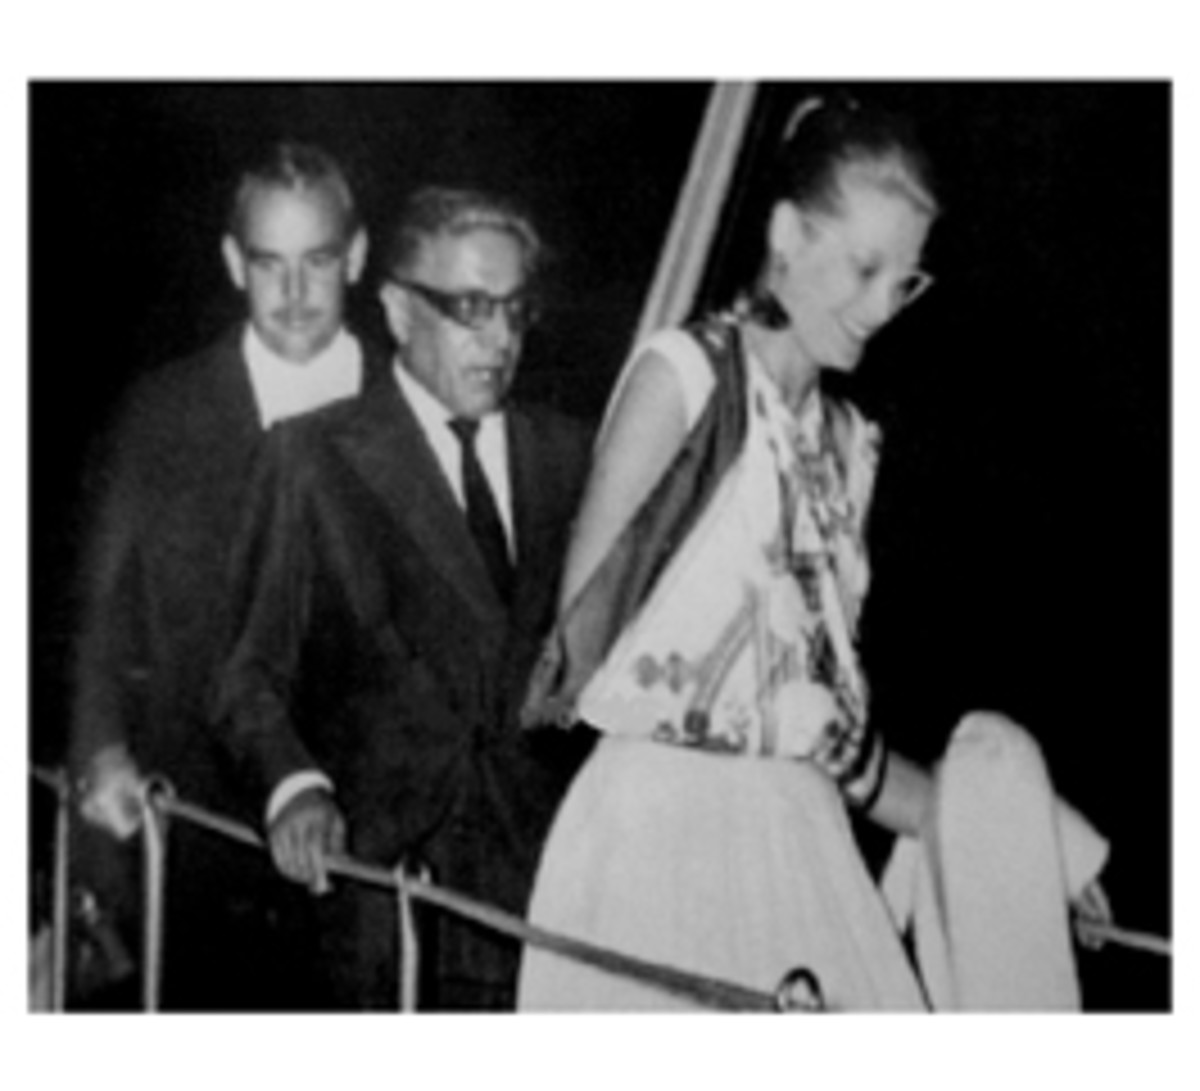 Princess Grace using a scarf for an arm sling - note the silk scarf is from the legendary French designer Hermes